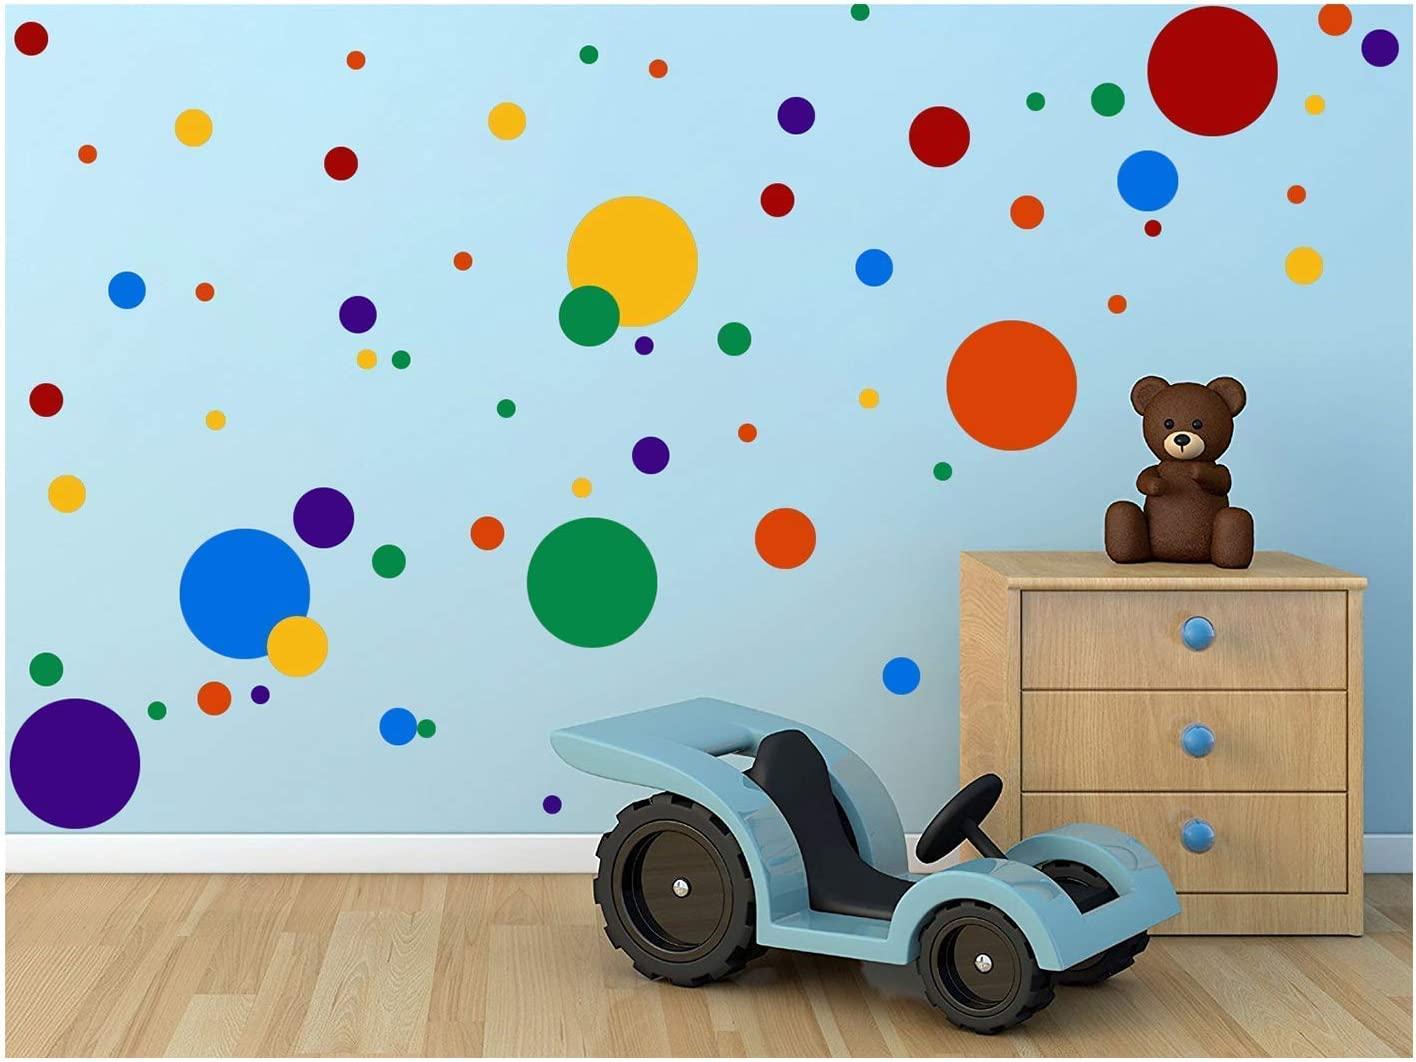 Amazon Com Toarti Polka Dots Wall Decals 132 Decals Easy To Peel Stick Polka Dots Wall Decals Safe On Walls Paint Removable Primary Colors Vinyl Polka Dot Decor Round Wall Stickers For Nursery Room Multicolor